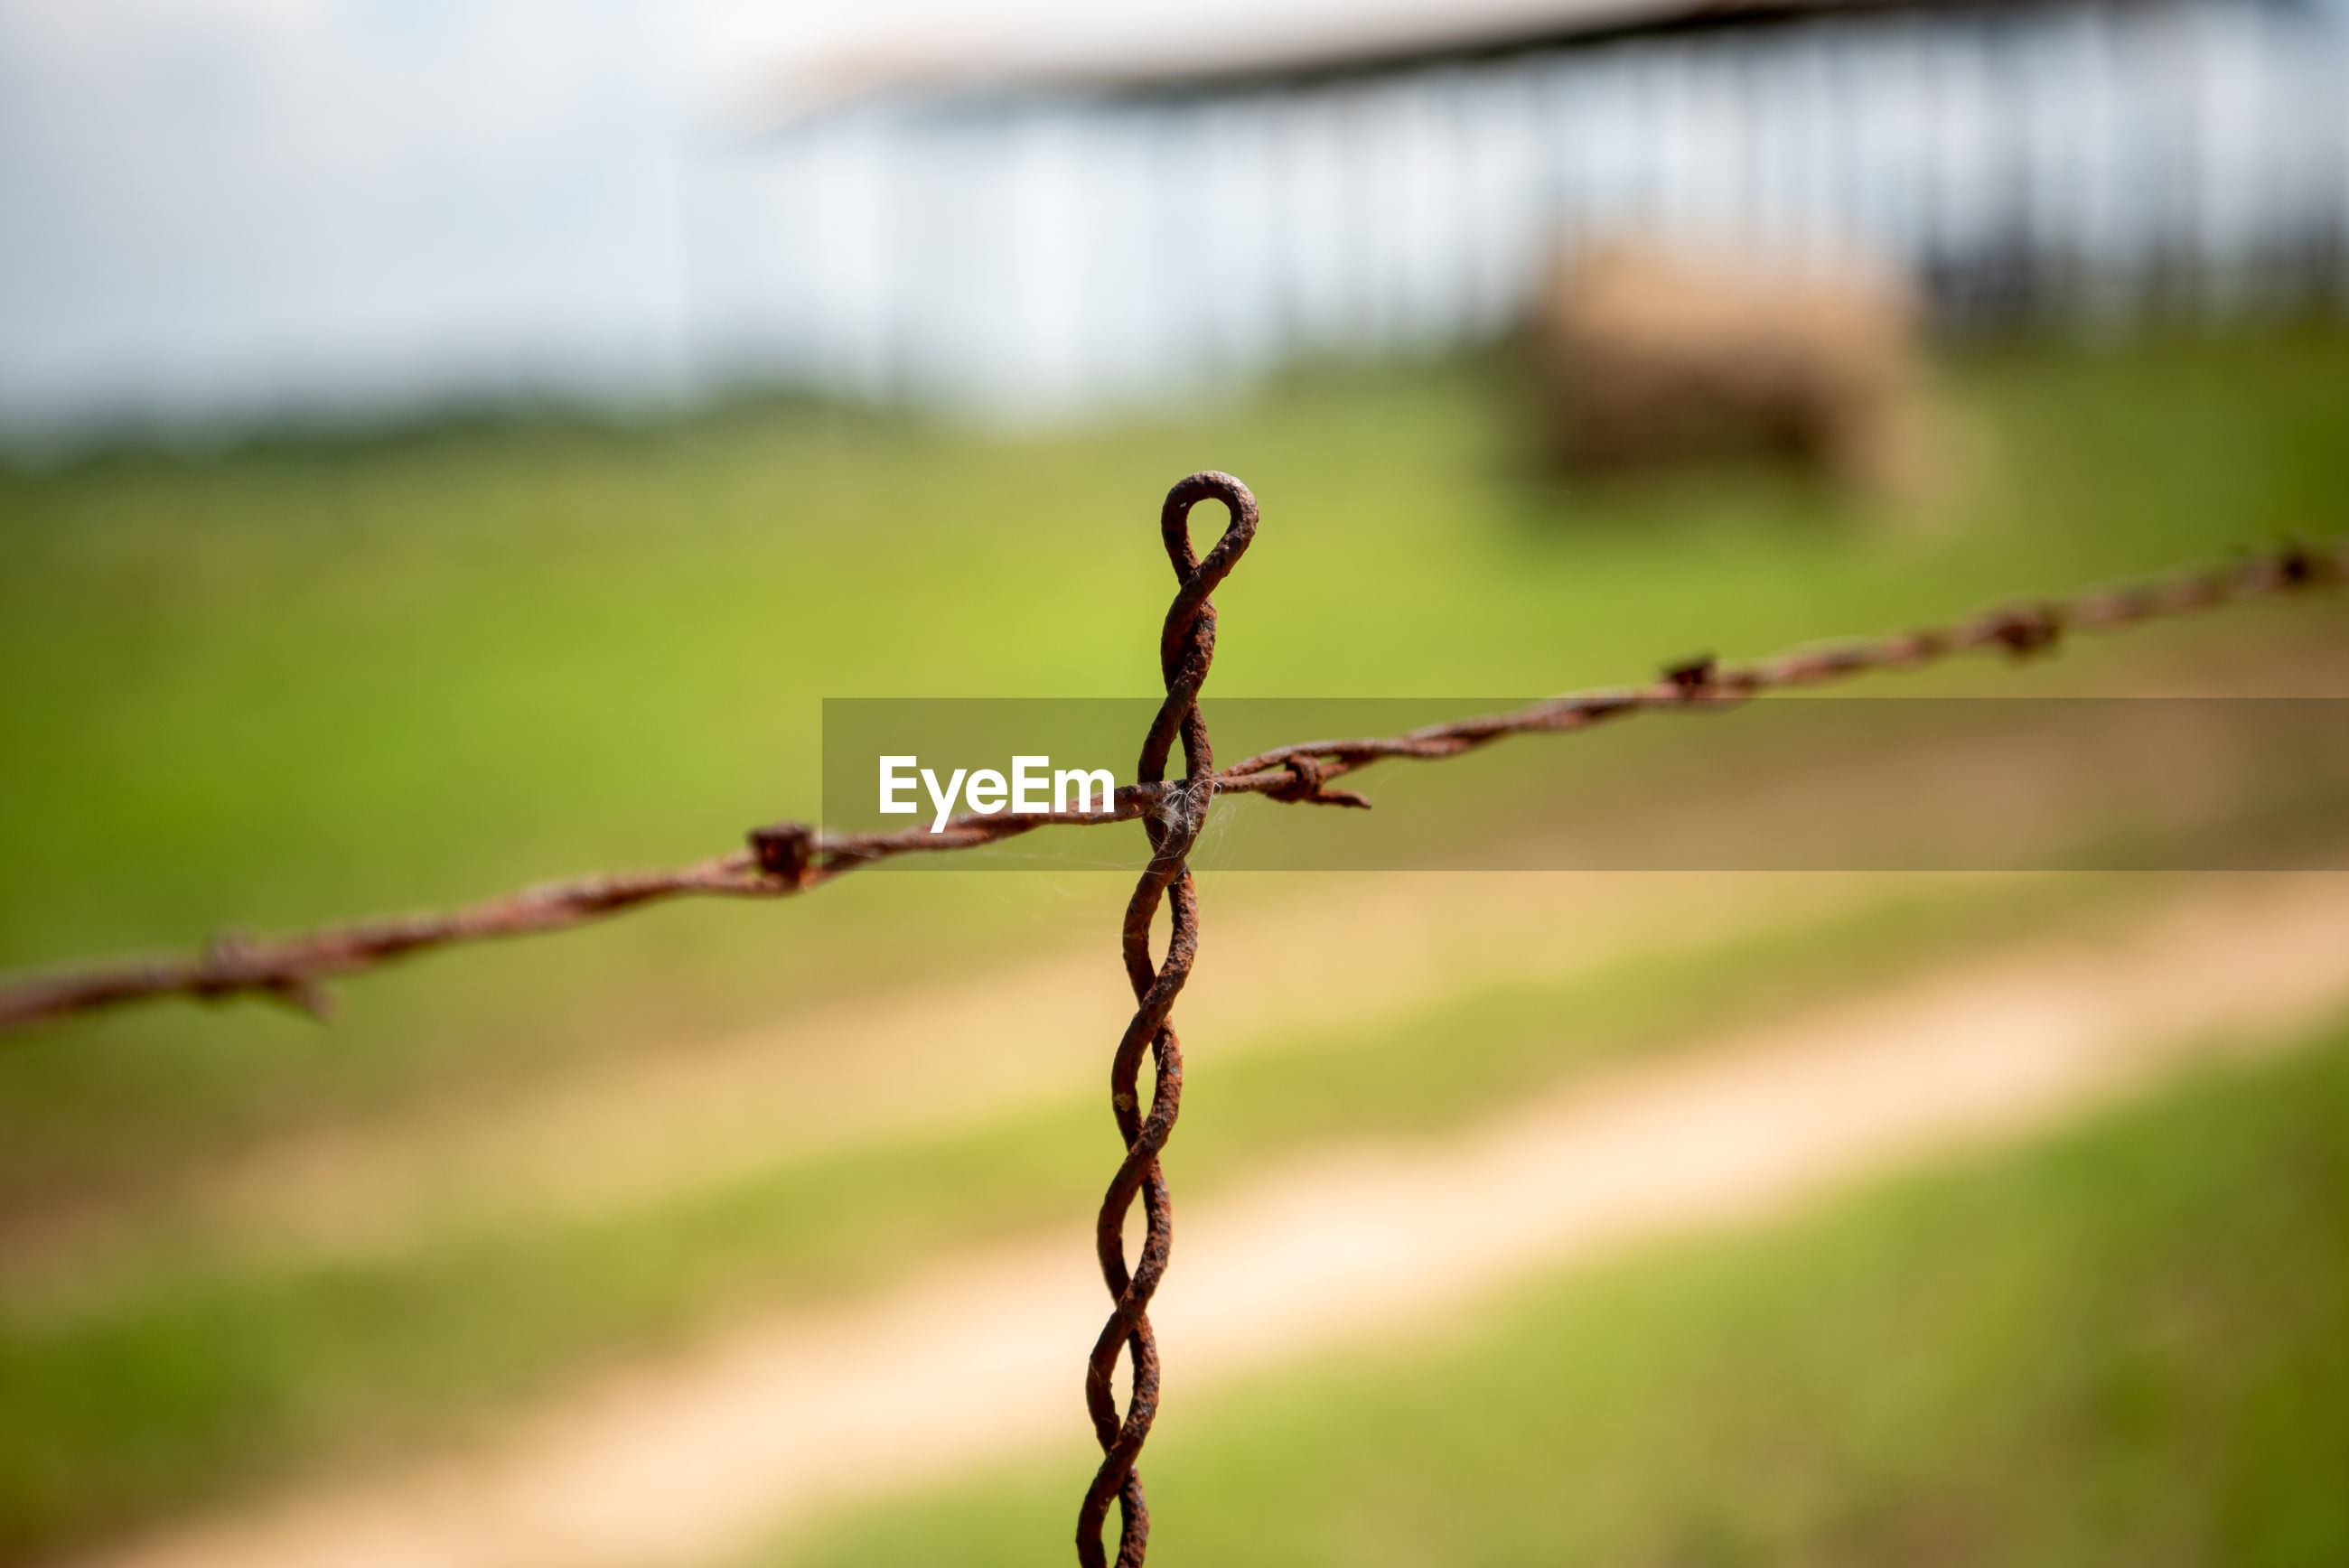 CLOSE-UP OF BARBED WIRE ON METAL FENCE